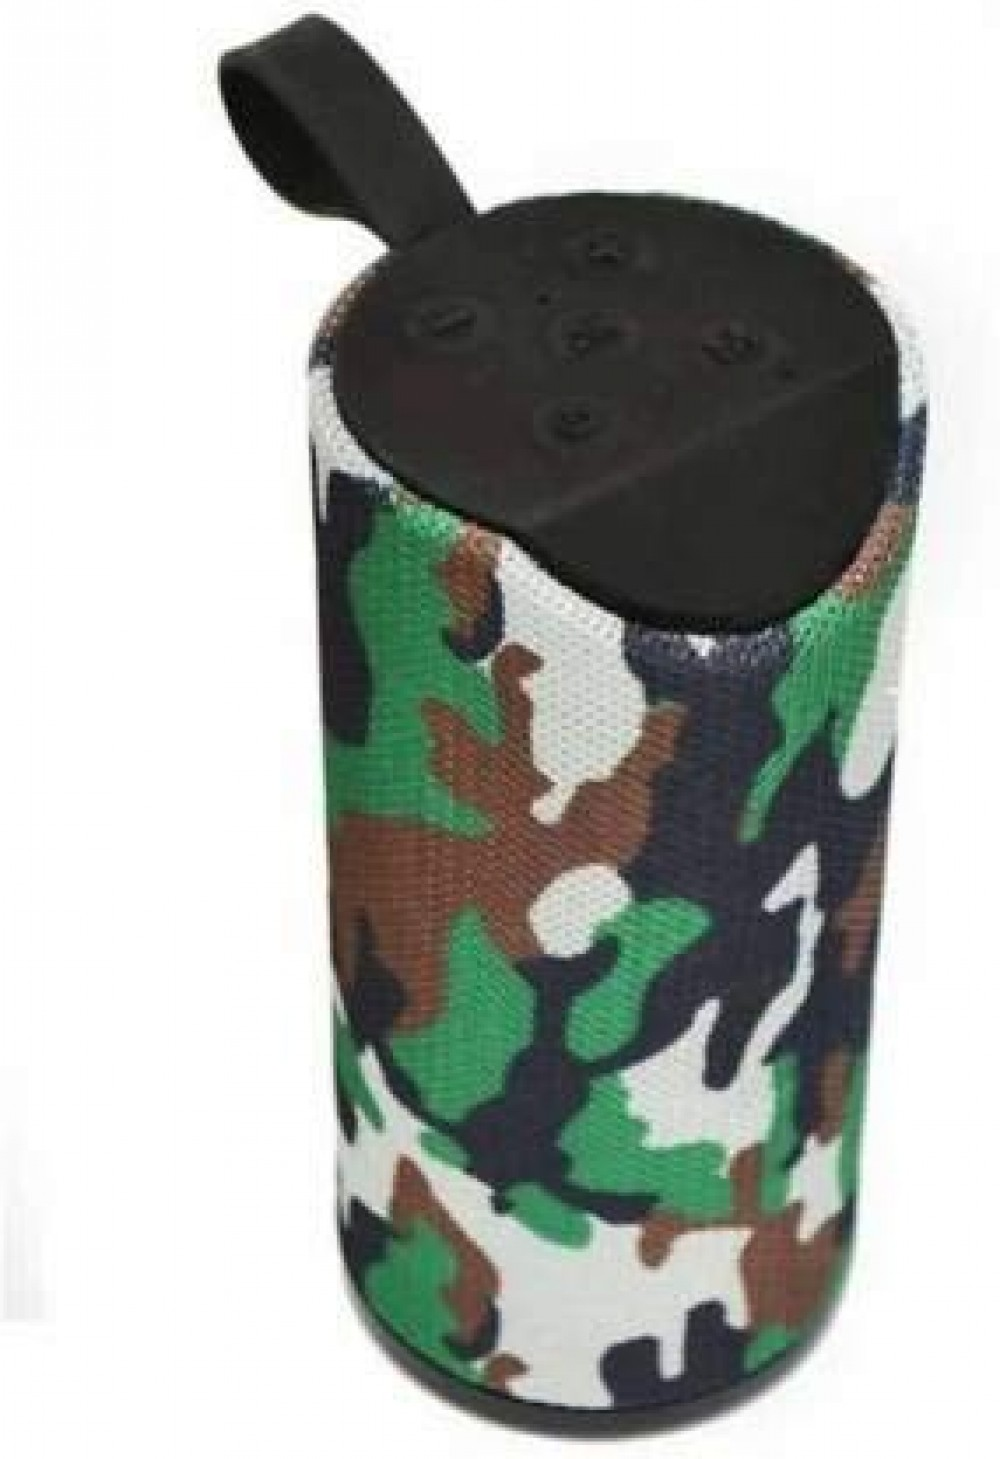 TG113 2 0 Channel Wireless Bluetooth Portable Speaker  Military Color